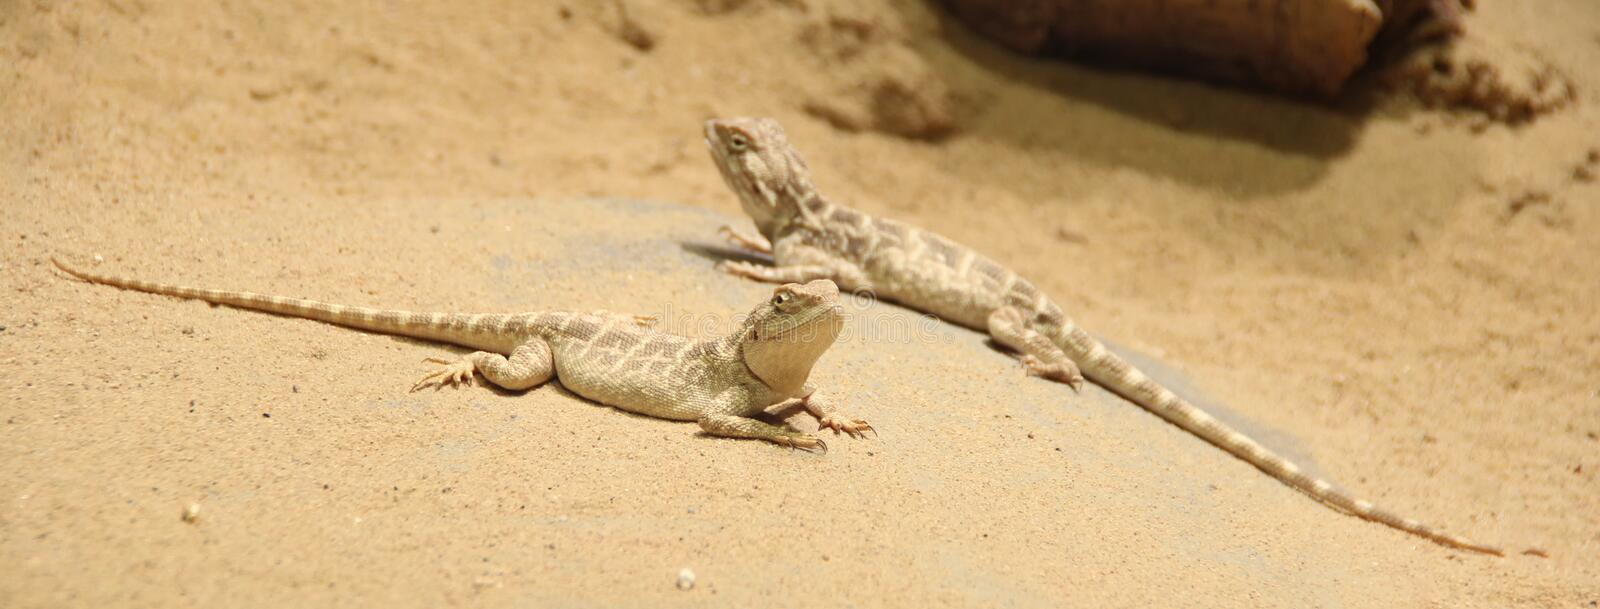 Lizards are relaxing in the sand stock photo